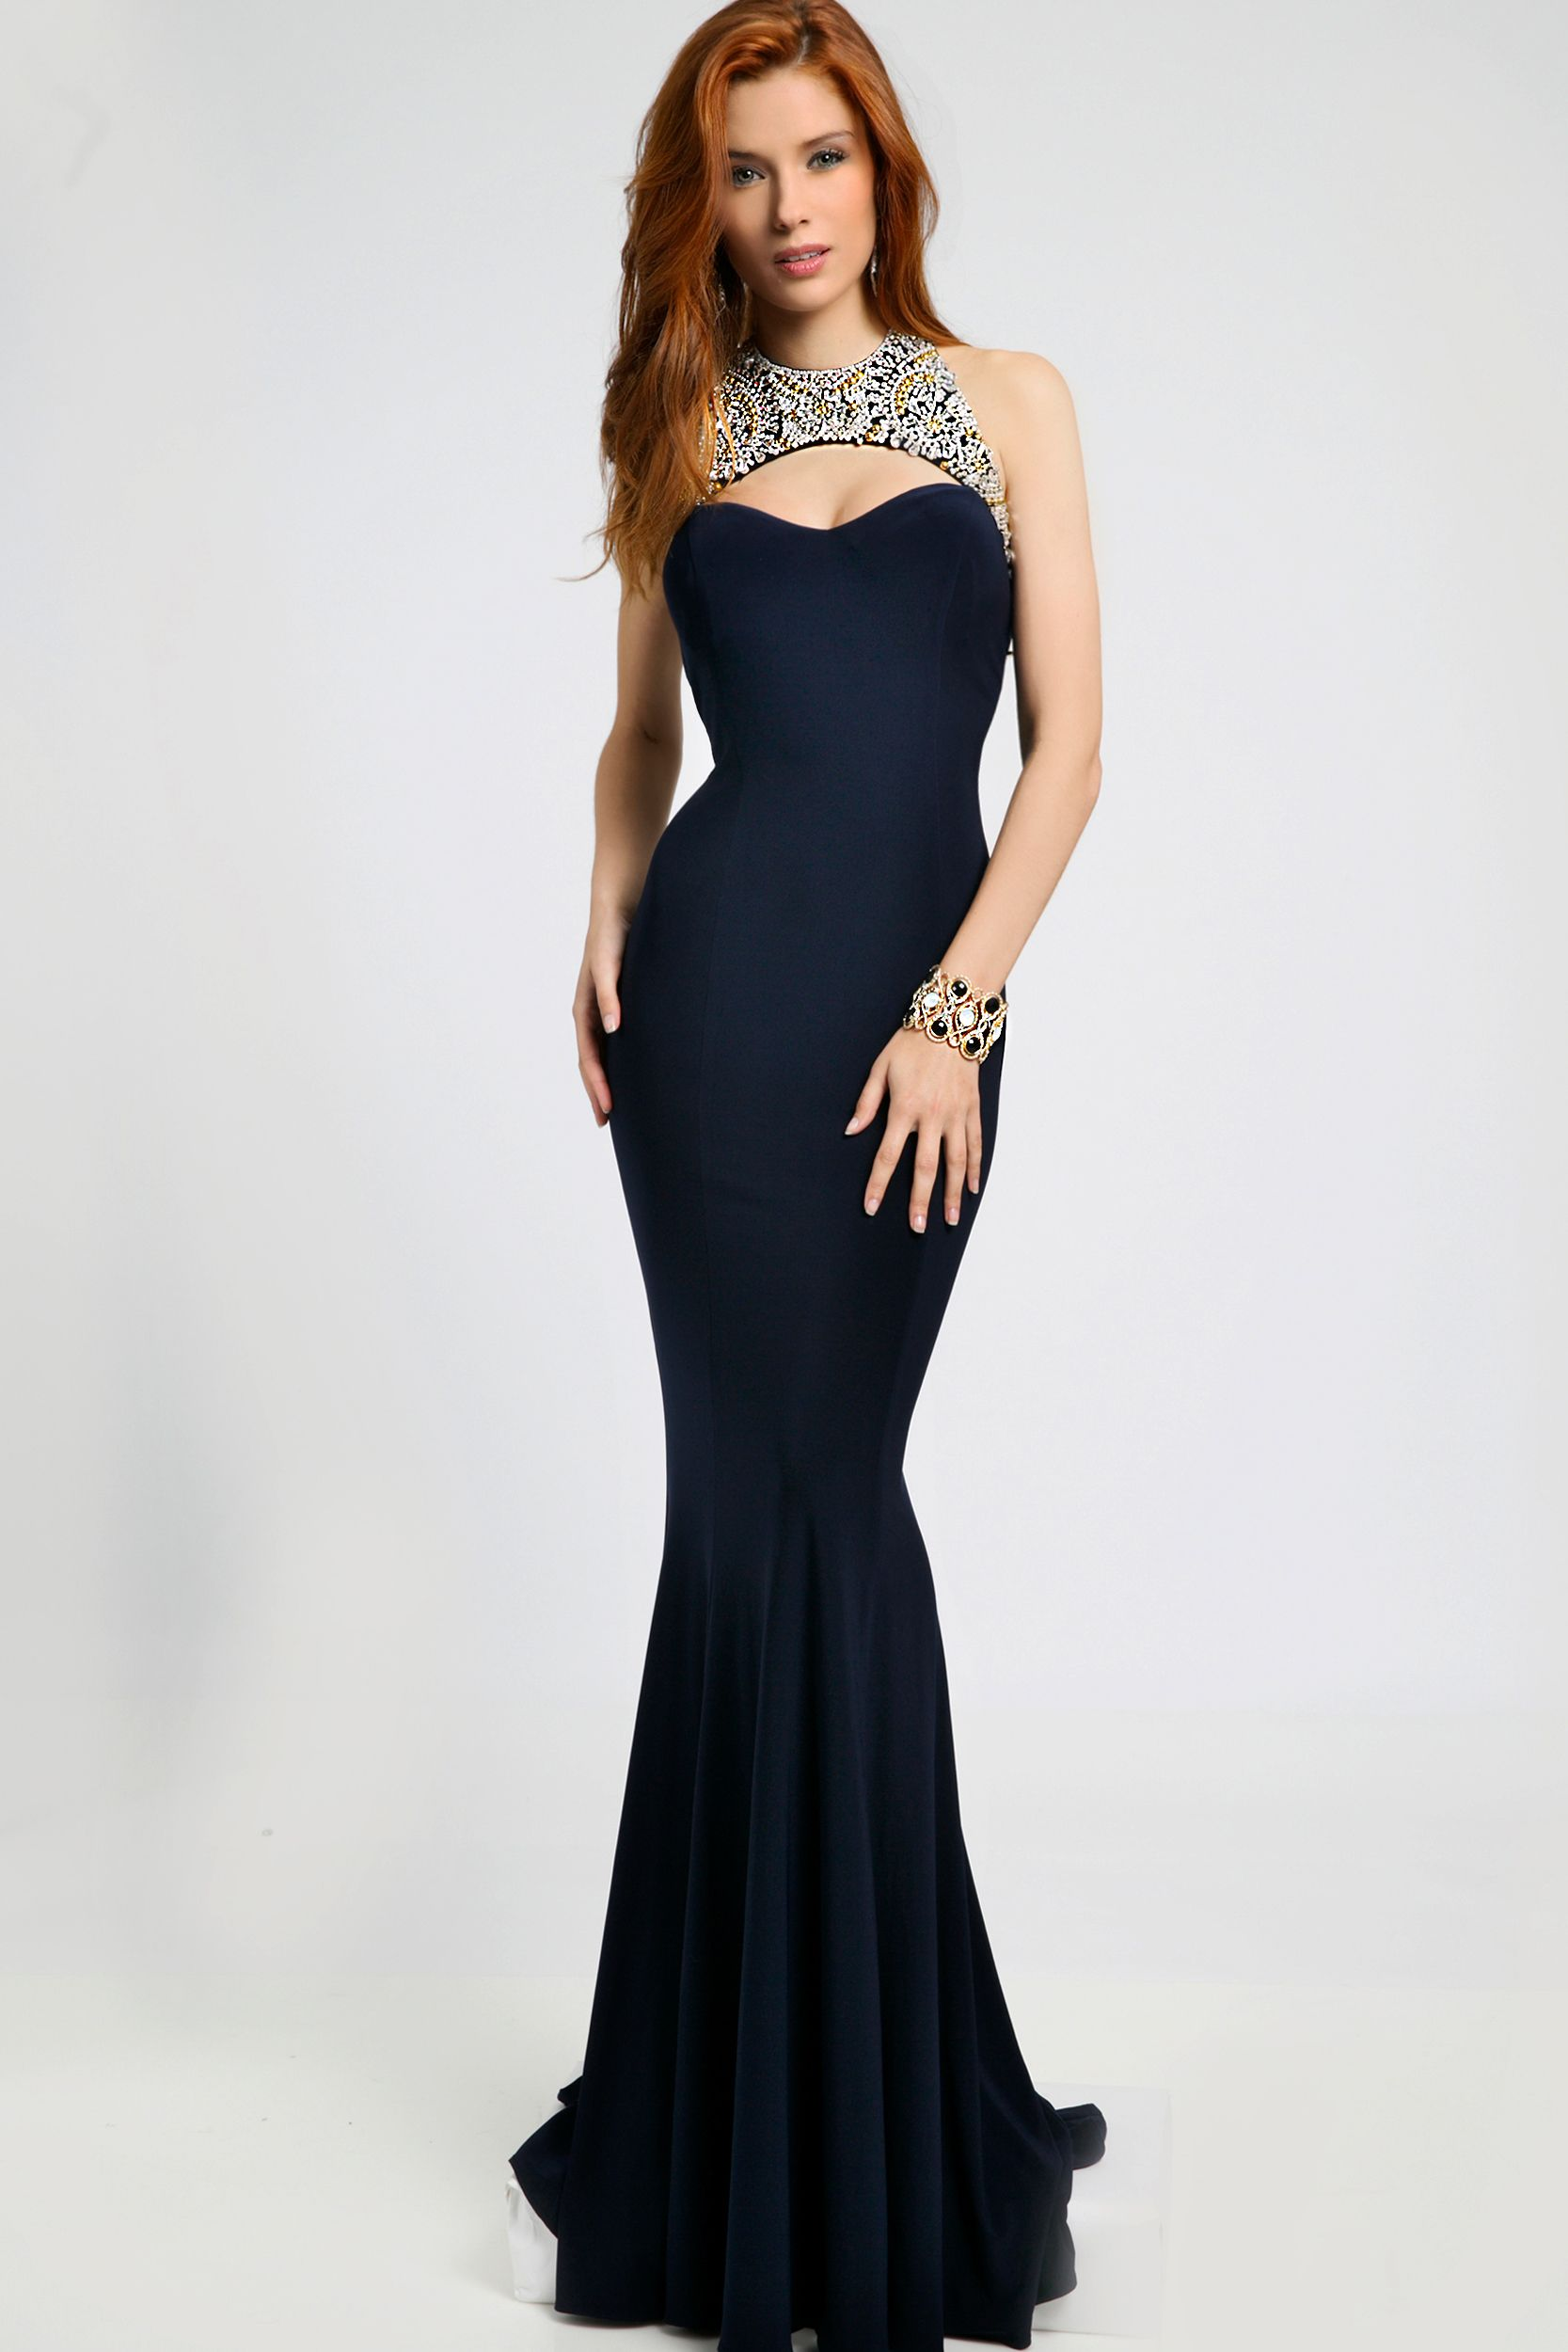 15 Prettiest Vintage-Inspired Prom Dresses | Outfits and dresses ...